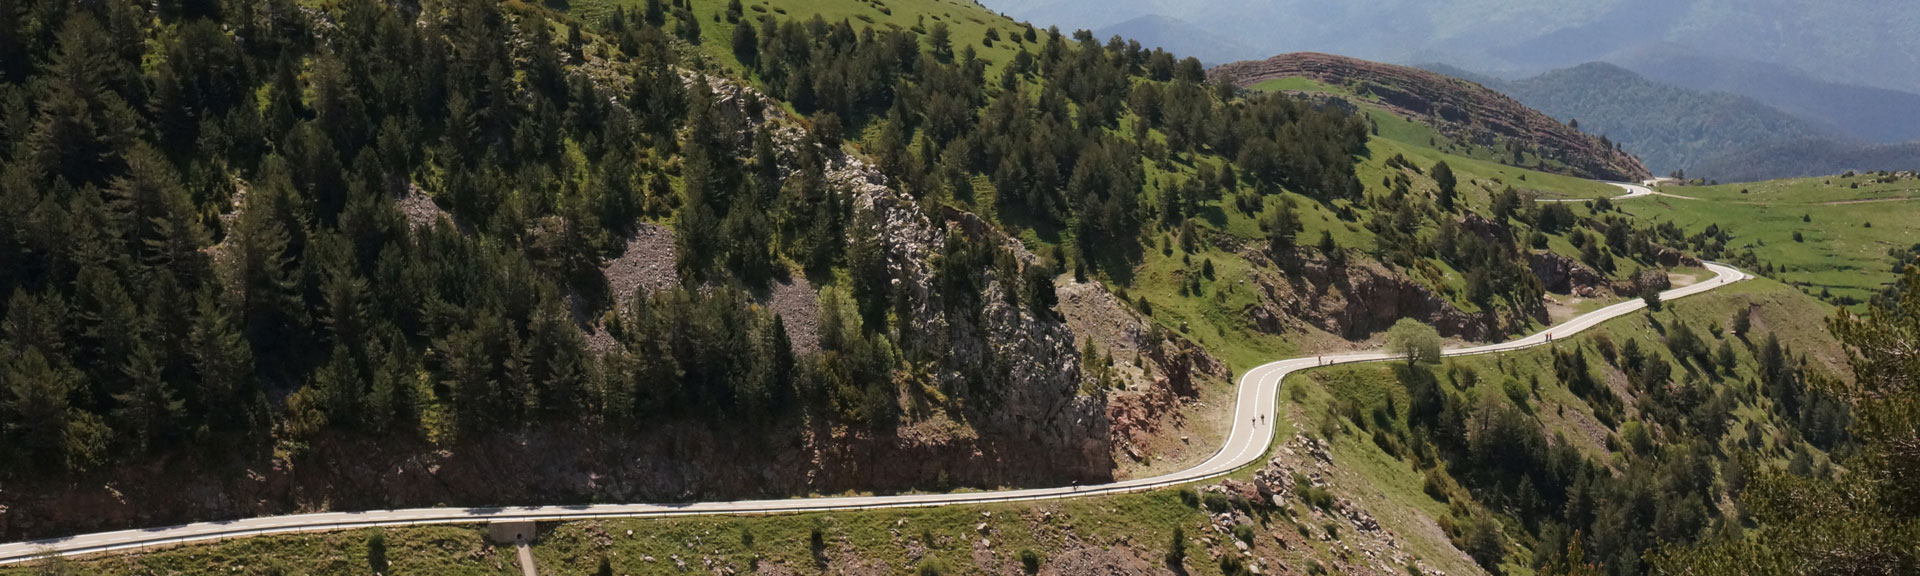 Bikecat Custom Cycling Tours - Best of Girona Tour - Pyrenees